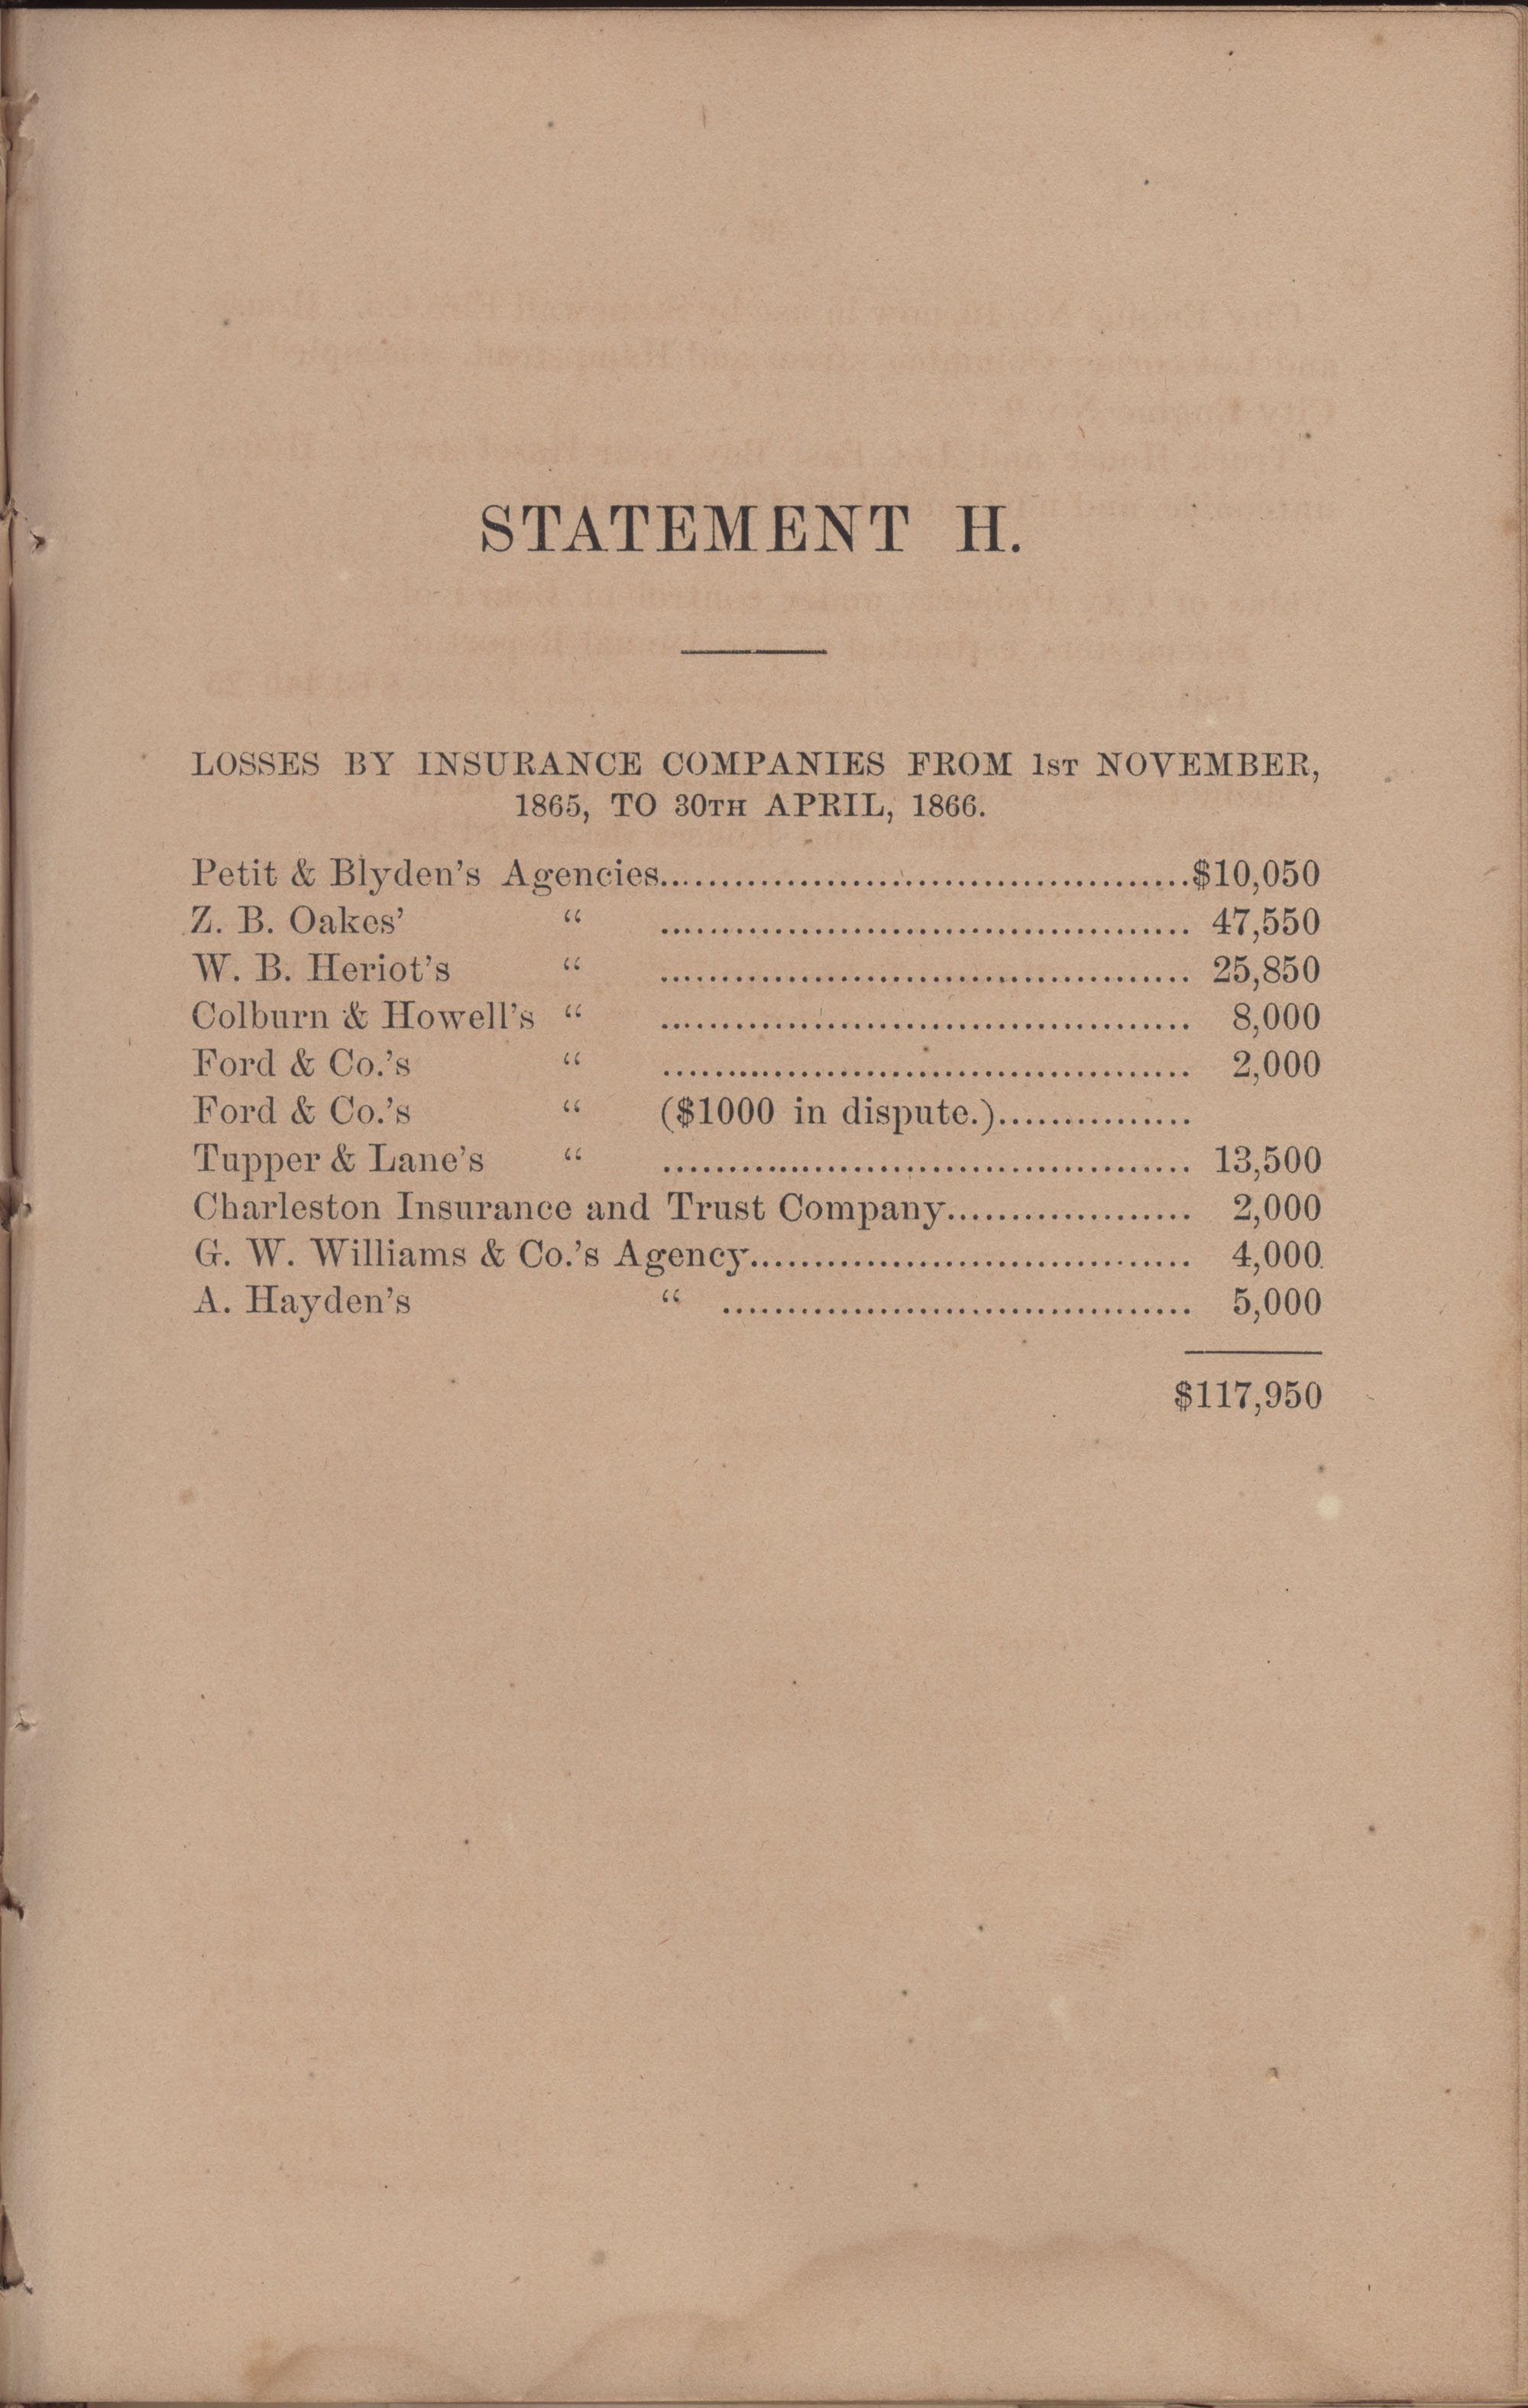 Annual Report of the Chief of the Fire Department of the City of Charleston, page 133